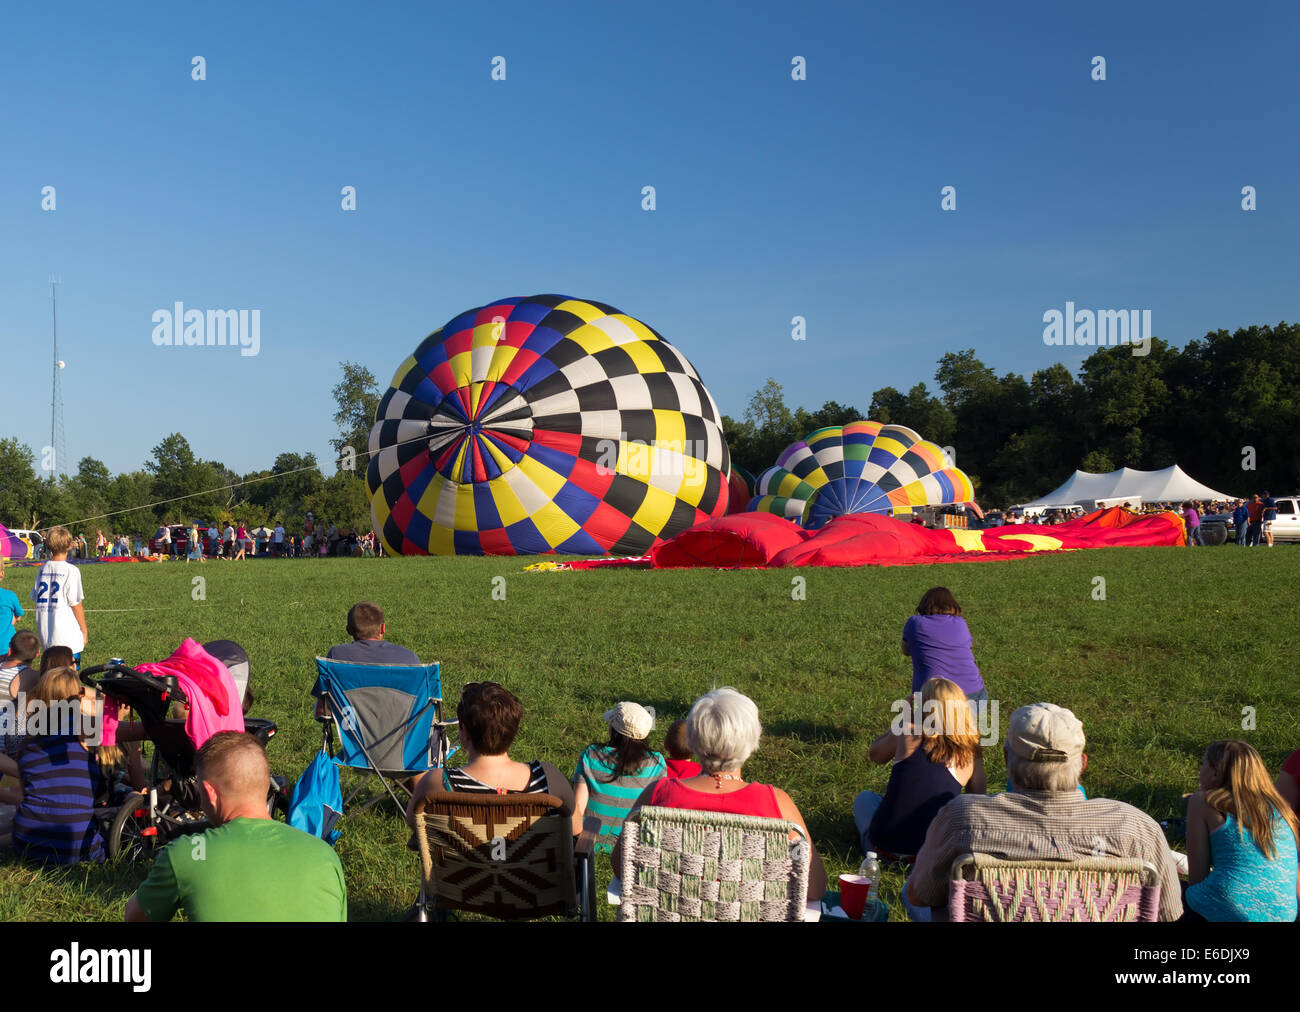 METAMORA, MICHIGAN – AUGUST 24 2013: Hot air balloons launch at the annual Metamora Country Days and Hot Air Balloon Stock Photo